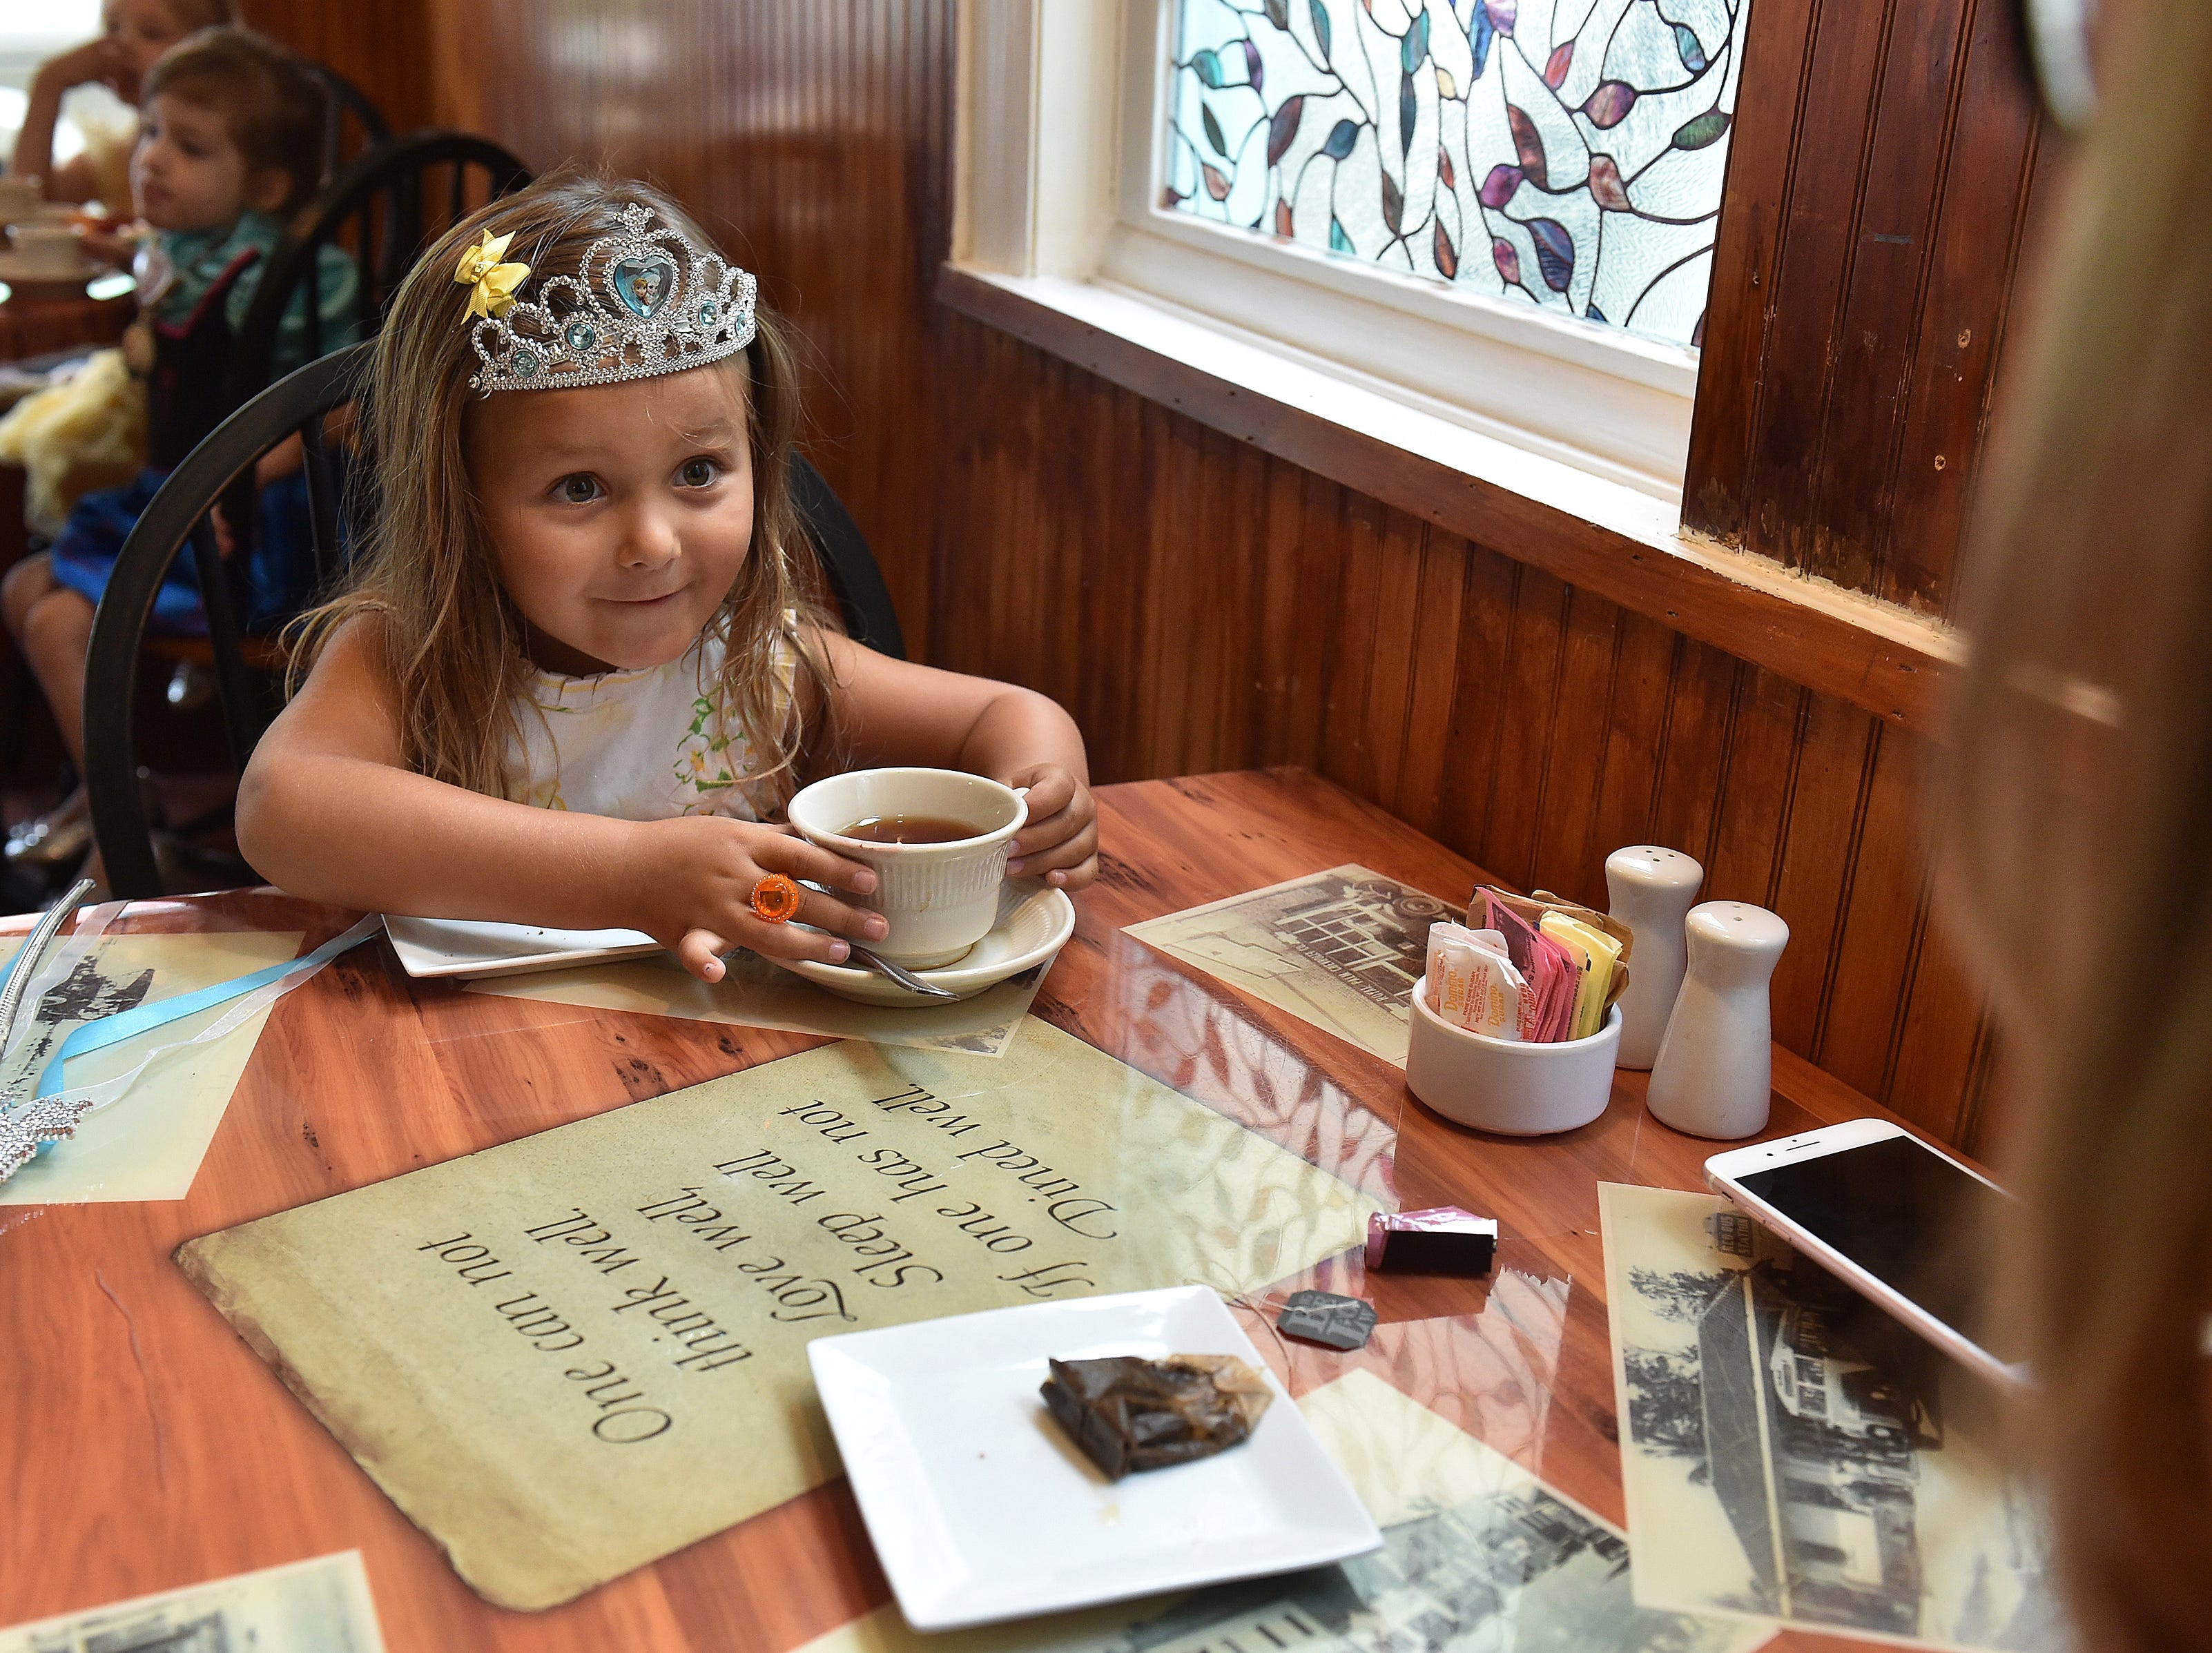 """Attired in a combination of Disney princesses Belle, of Beauty and the Beast, and Elsa, from Frozen, Mia Raaz, 4, of Jensen Beach, prepares to sample a tea prepared by her mother Lauren Raaz (right) during a Tea for Kids party at Banyon 320 Kitchen and Bar, at 320 SE Denver Avenue on Tuesday, July 24, 2018, in Stuart. """"I think it's super cute, and fun for the kids, she was super excited to come,"""" Lauren Raaz said. """"She loves princesses and tea parties, and anything girly related."""" More than 25 children dressed as knights, princesses, pirates and other characters, along with their parents, grandparents or nannies were treated to tea, sandwiches, and fruits during the free event. """"When I opened here in December, I really wanted to create a place where families can come for fun activities that are free,"""" said Rachel Pias, owner and chef at Banyon 320. """"We usually try to do something bi-monthly whether it's a kids cooking activity or tea party…whatever we can think of that's new and fun and keeps the activities exciting."""""""